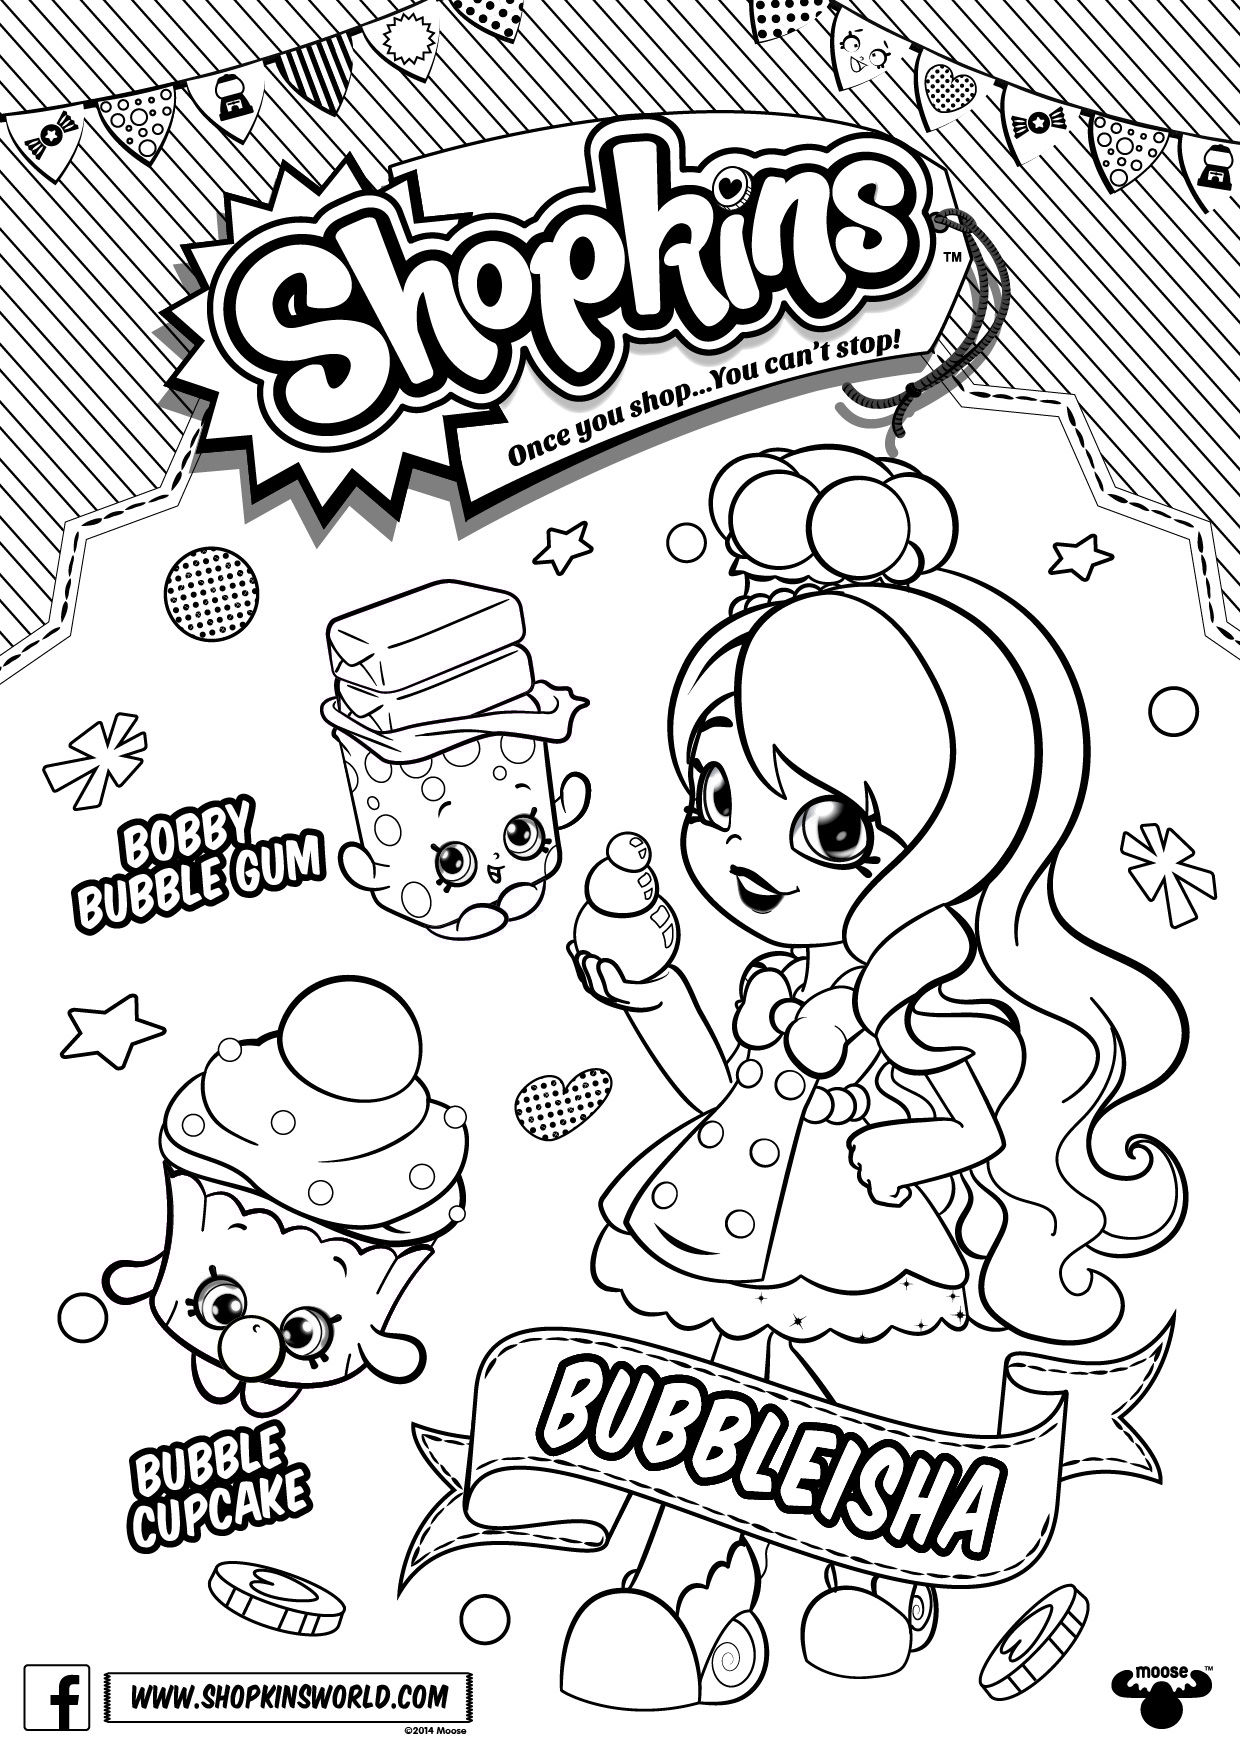 Shopkins Chef Club Bubbleleisha Shopkins Colouring Pages Manga Coloring Book Halloween Coloring Pages